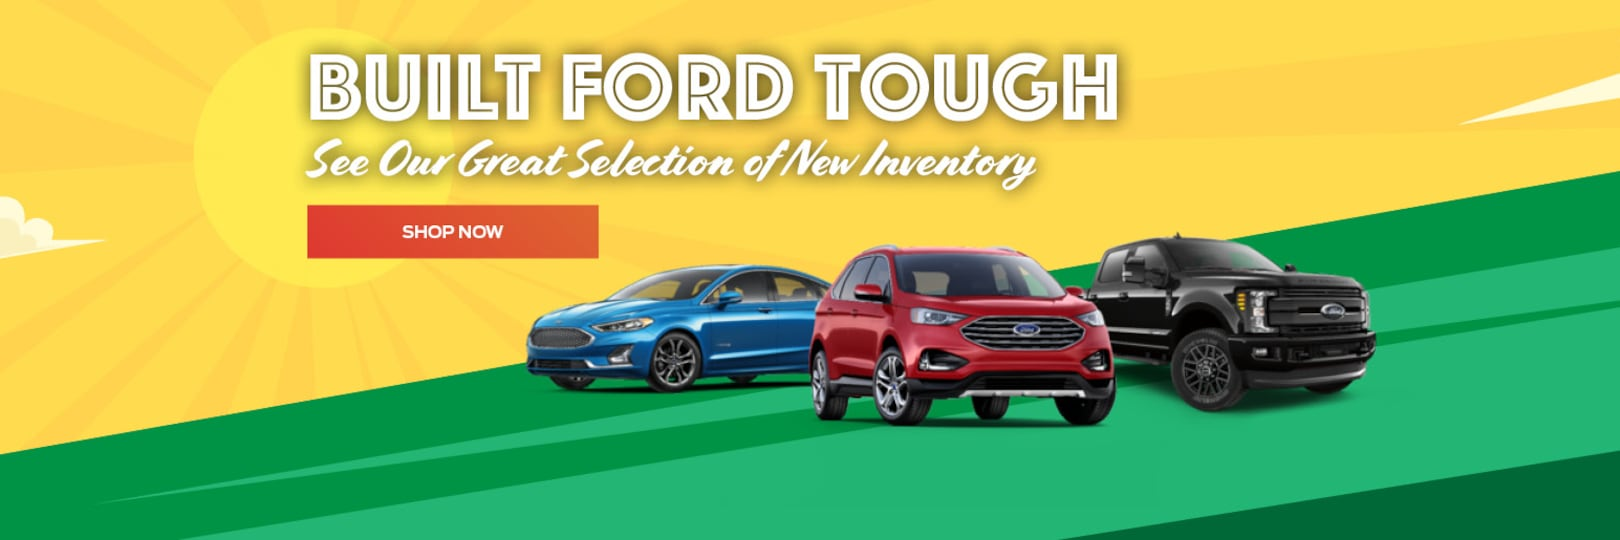 Ford Dealers Mn >> Sugar Loaf Ford Lincoln Inc Lincoln Ford Dealership In Winona Mn